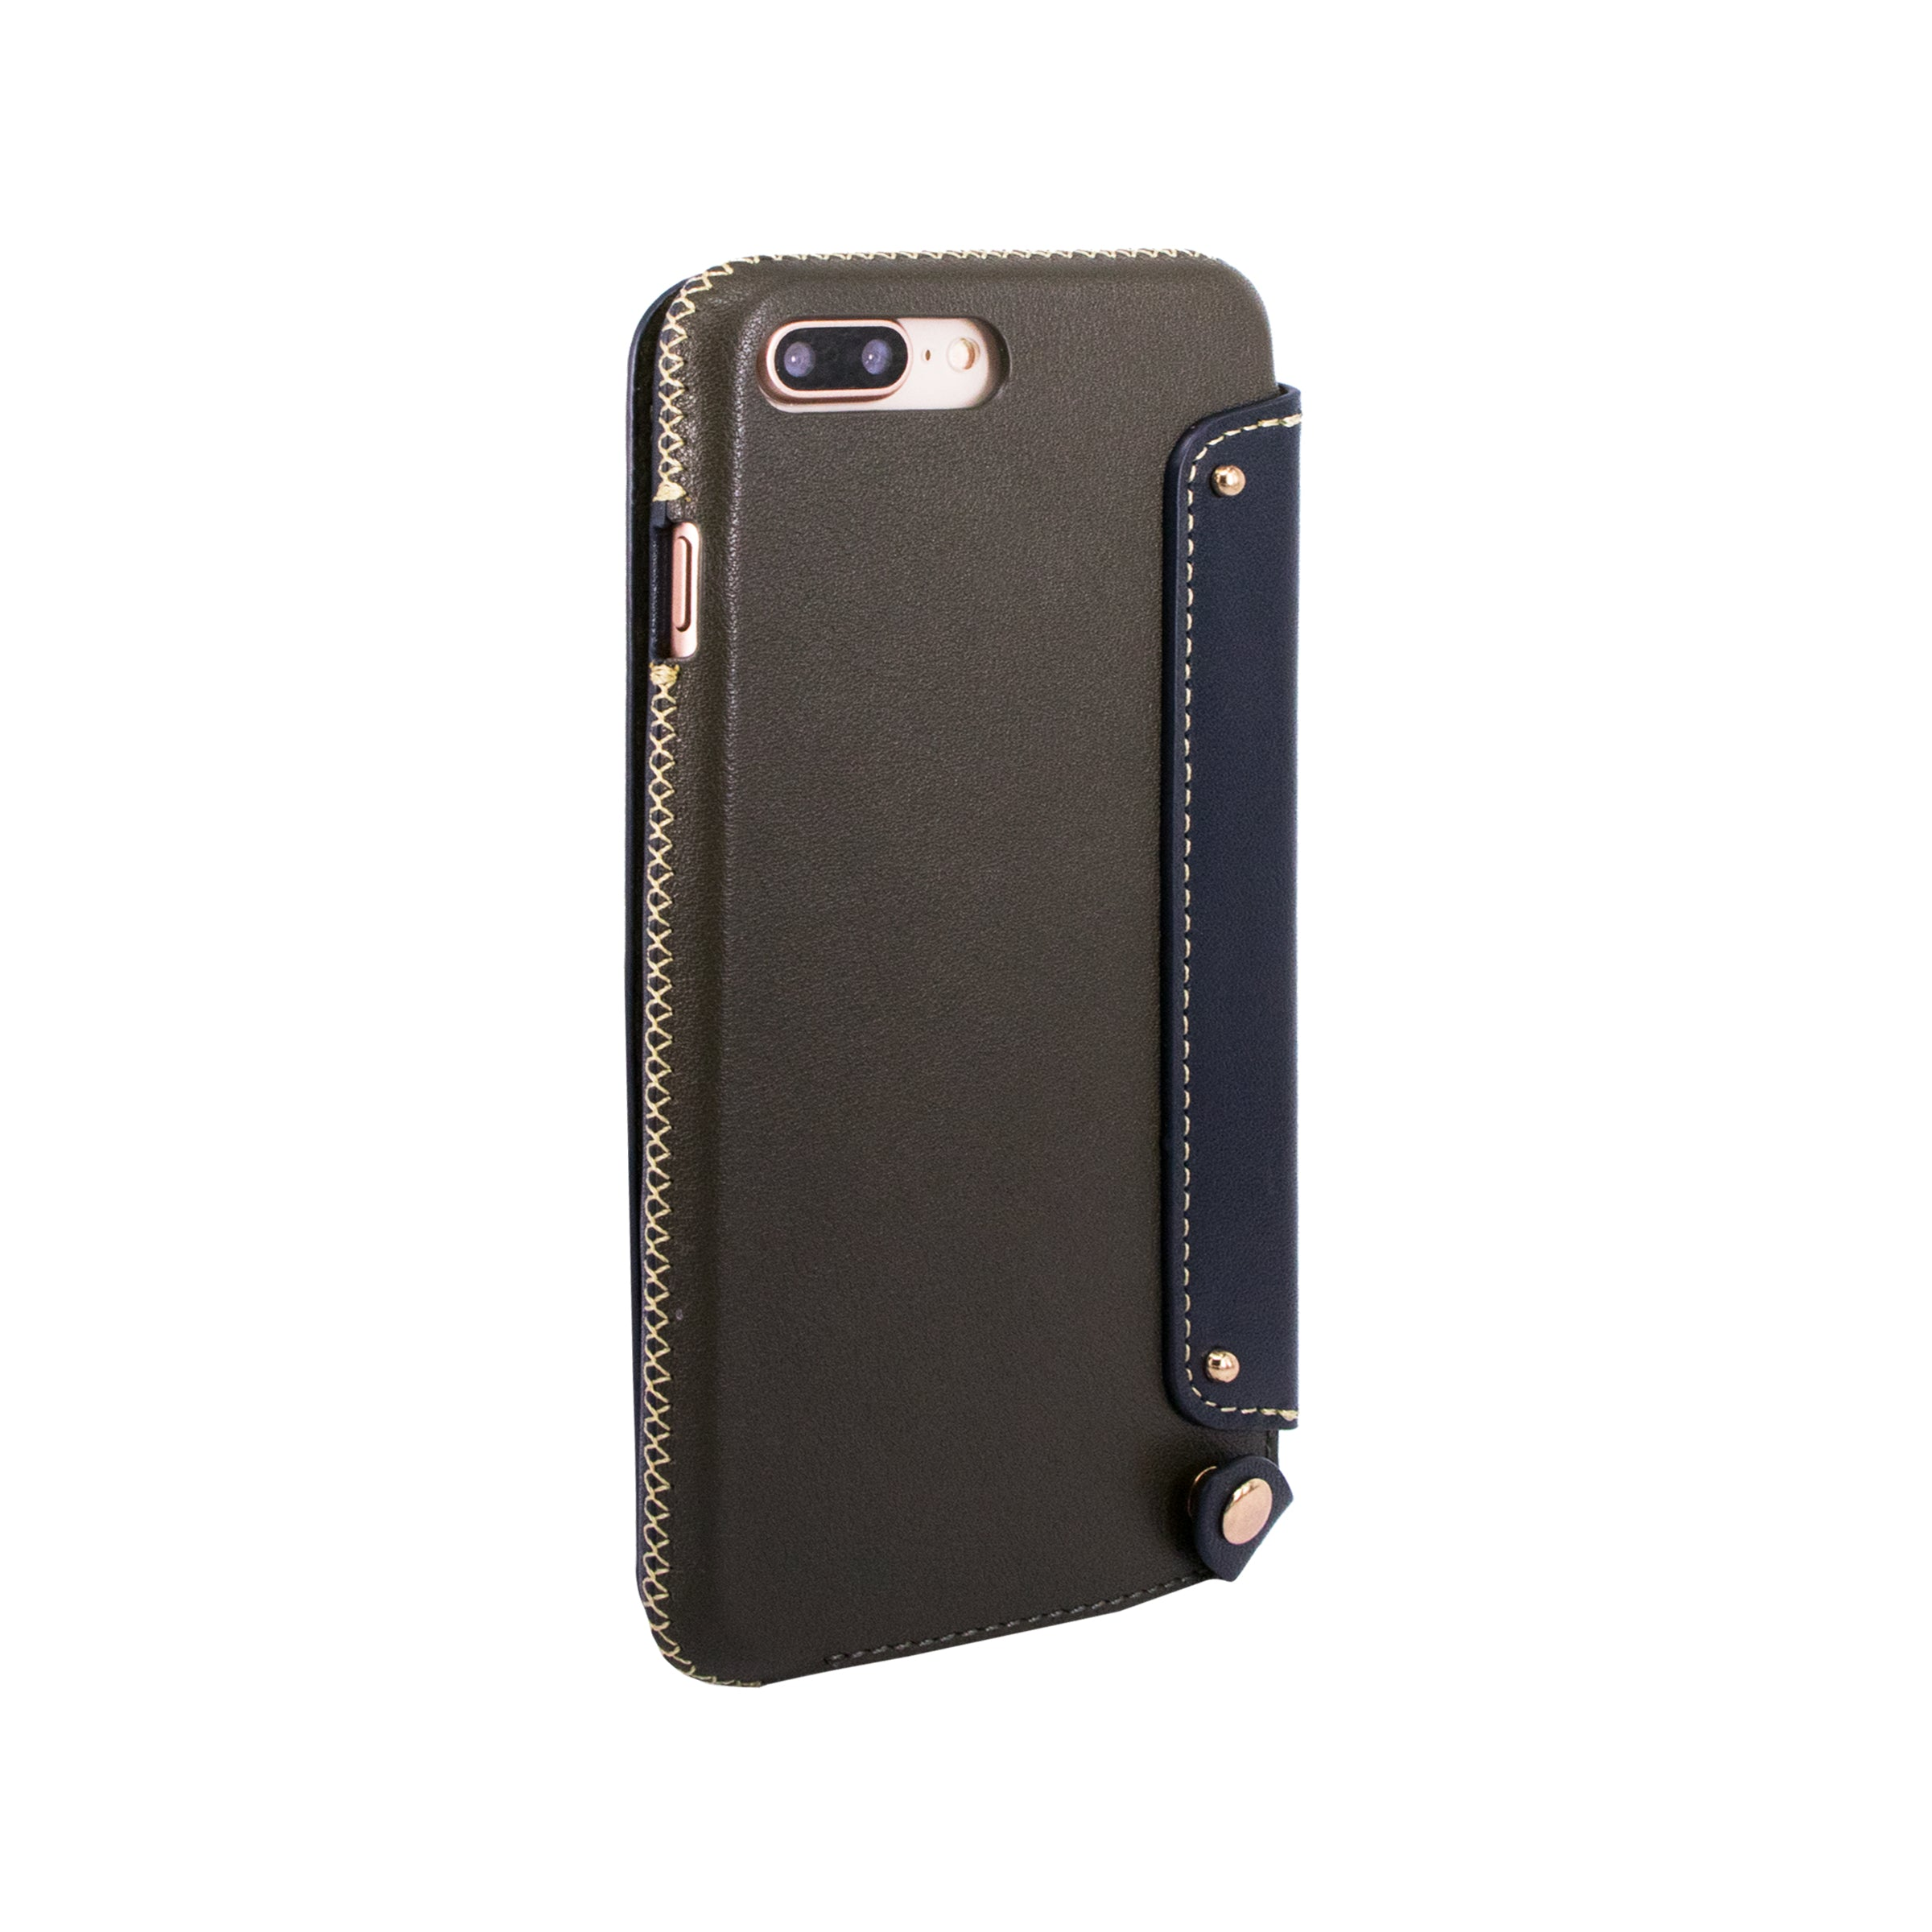 reputable site b767b 7b668 Leather Folio Case with Card Slot for iPhone 7 Plus / iPhone 8 Plus, Dark  green/Navy